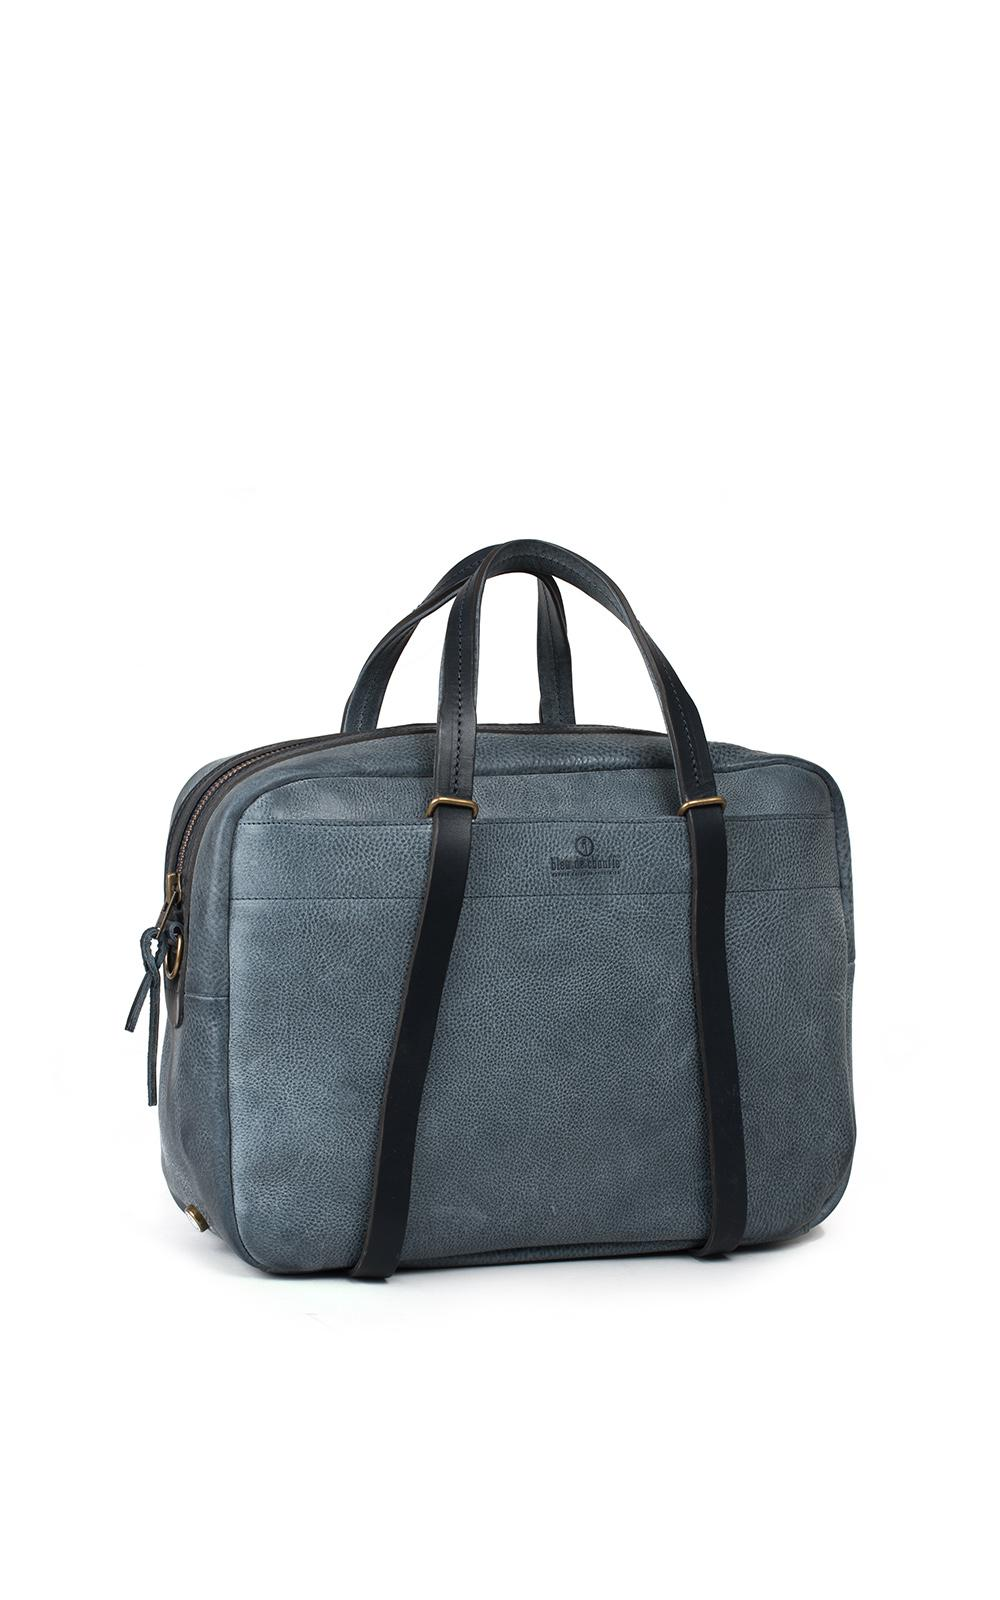 Full-grain Leather Holdall Bleu de Chauffe